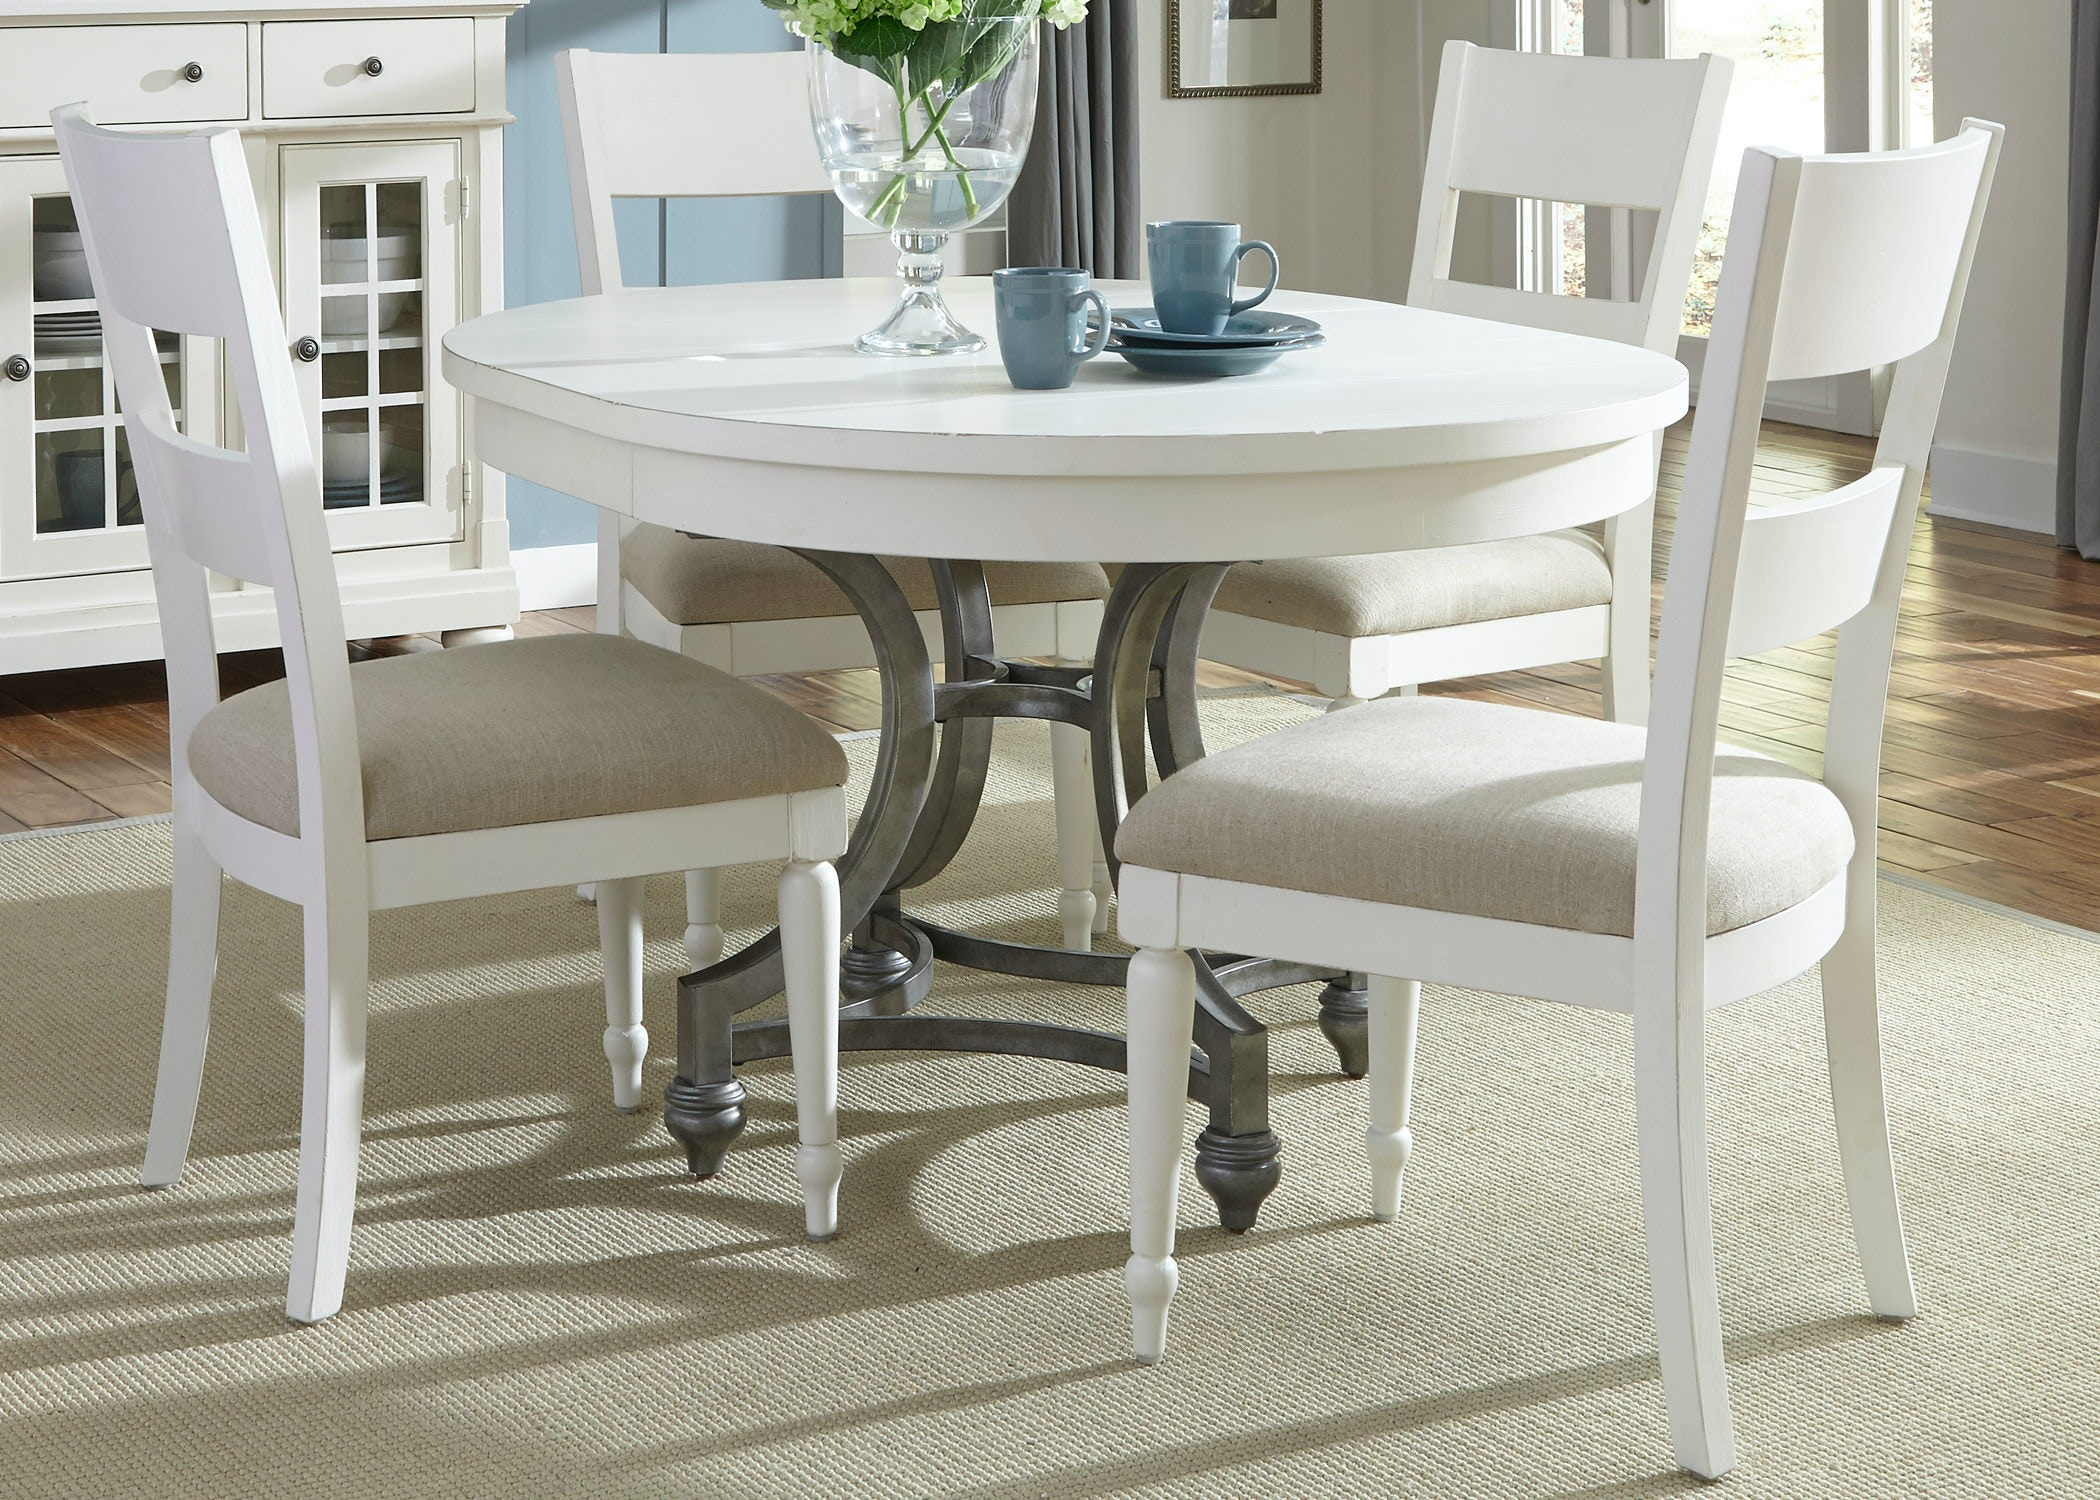 Liberty Furniture 5 Piece Round Table Set 631 DR 5ROS